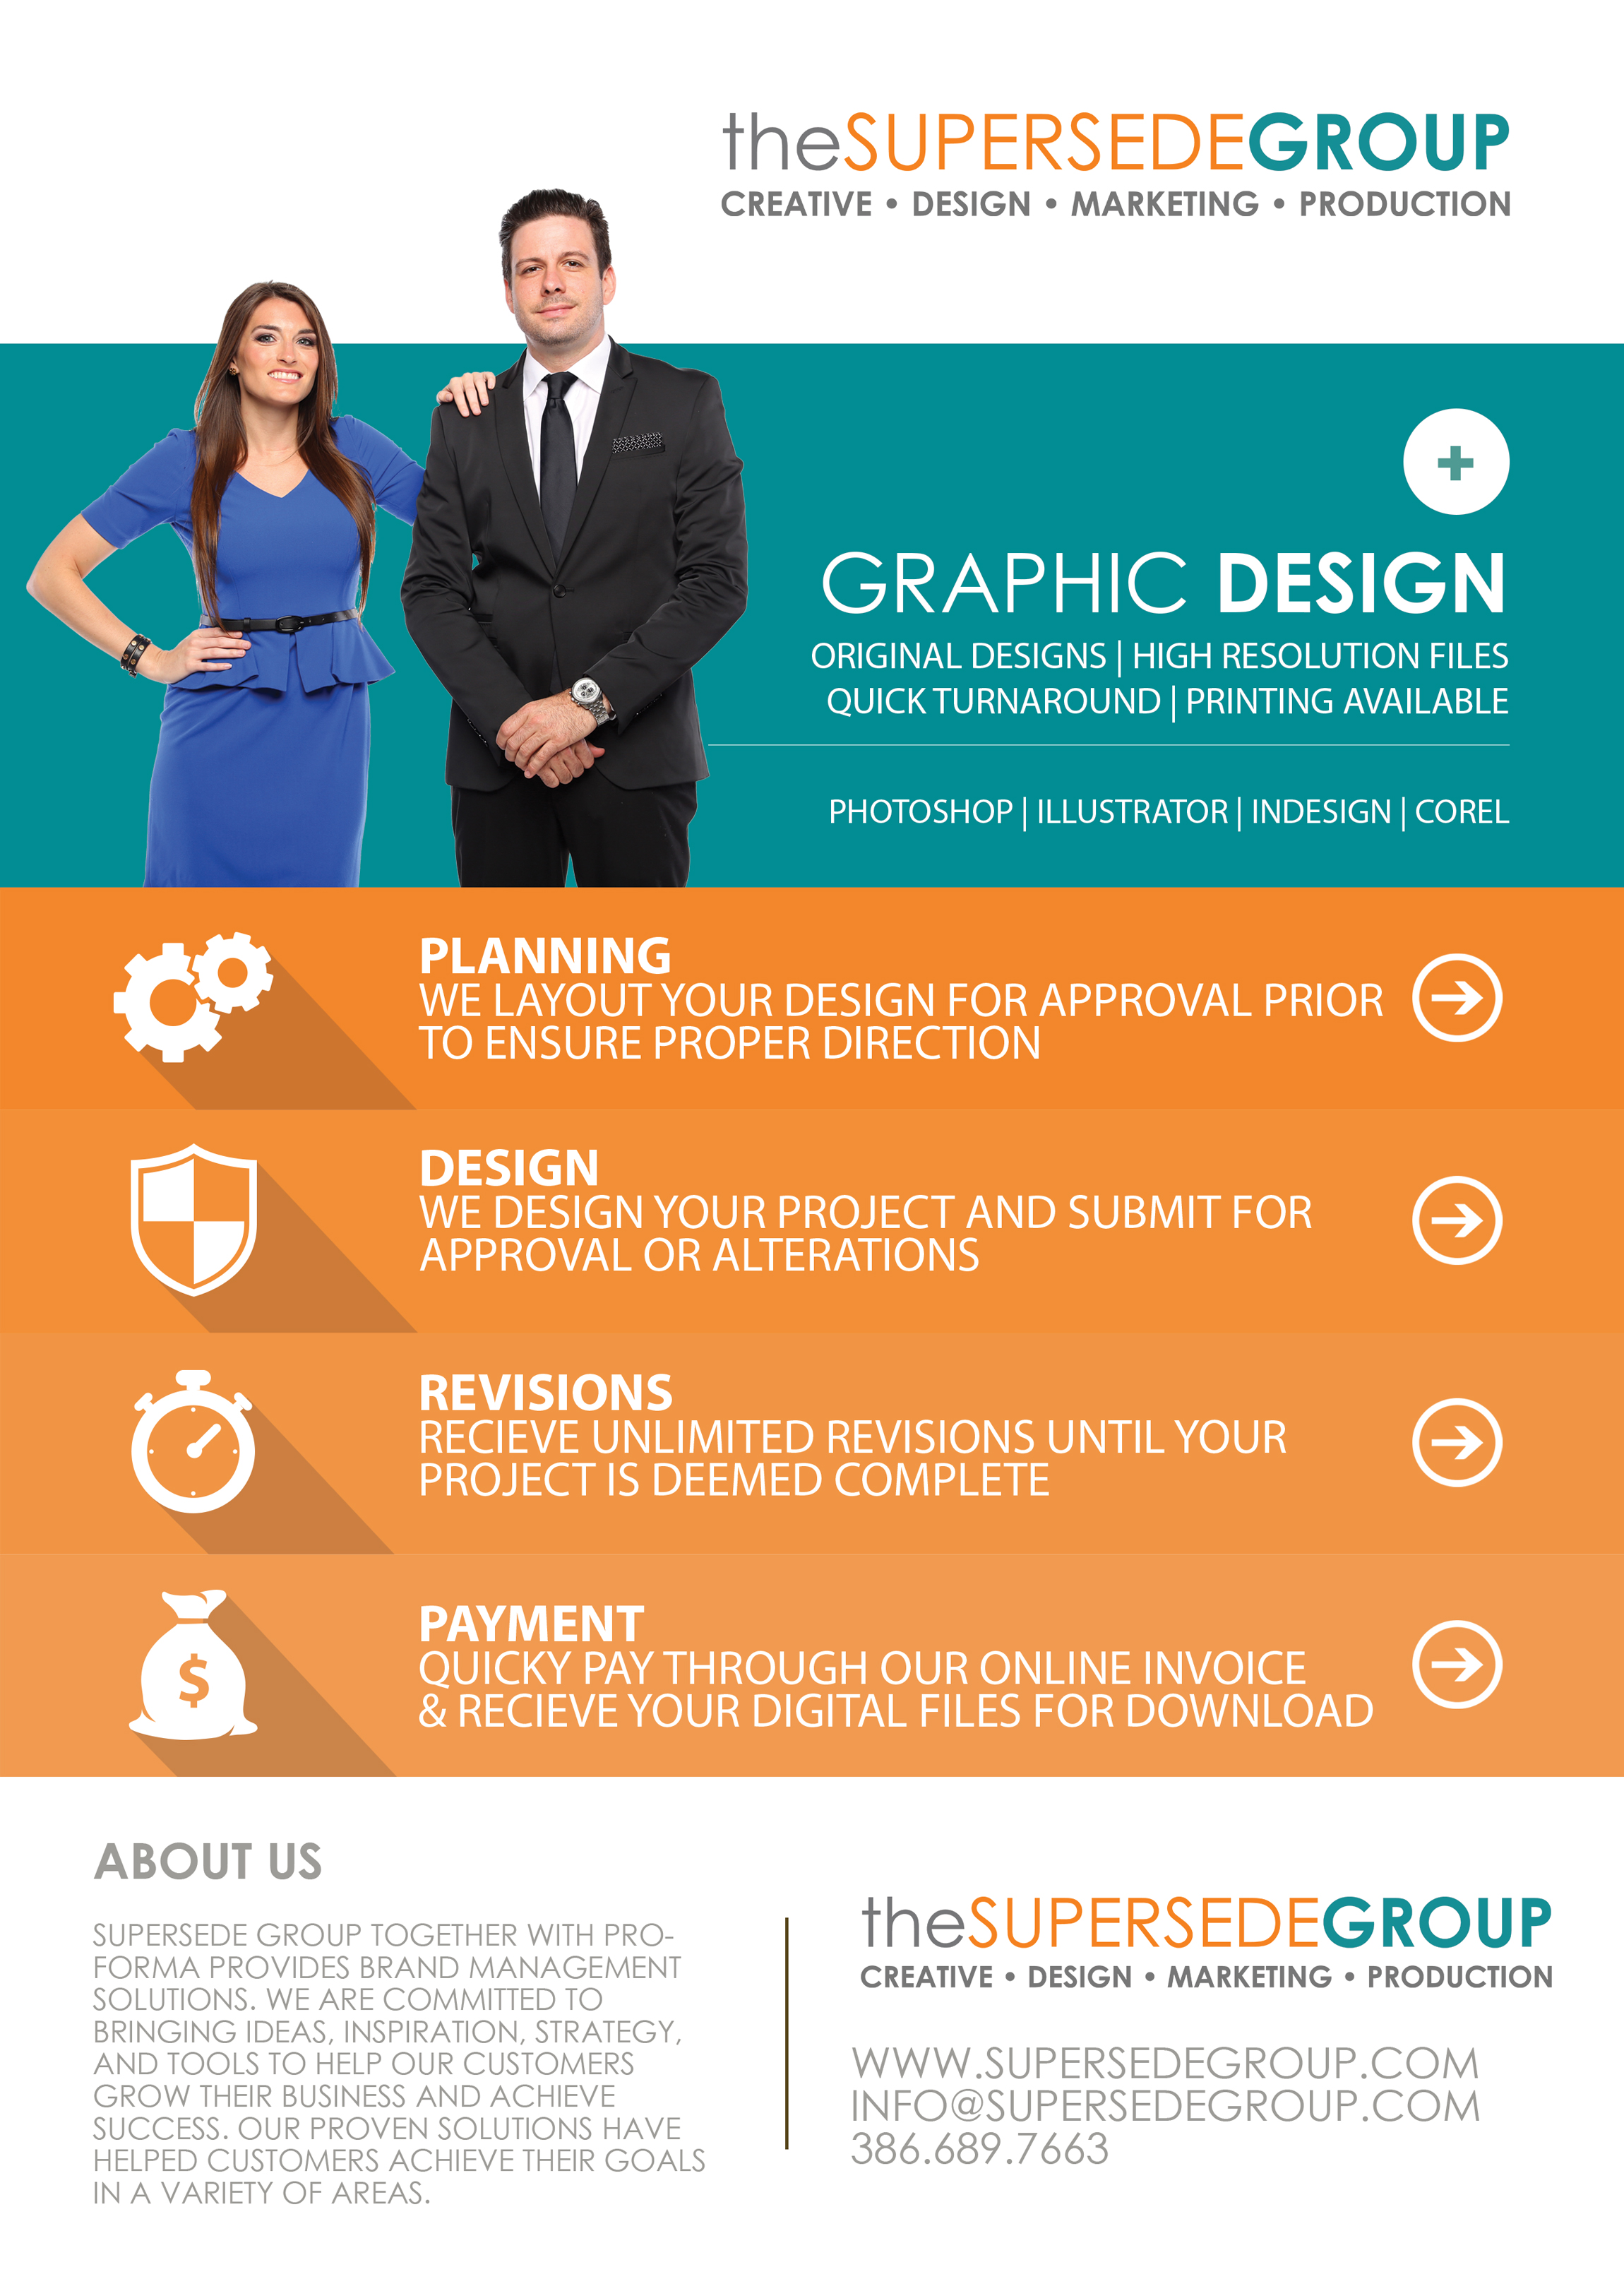 The Supersede Group Graphic Design